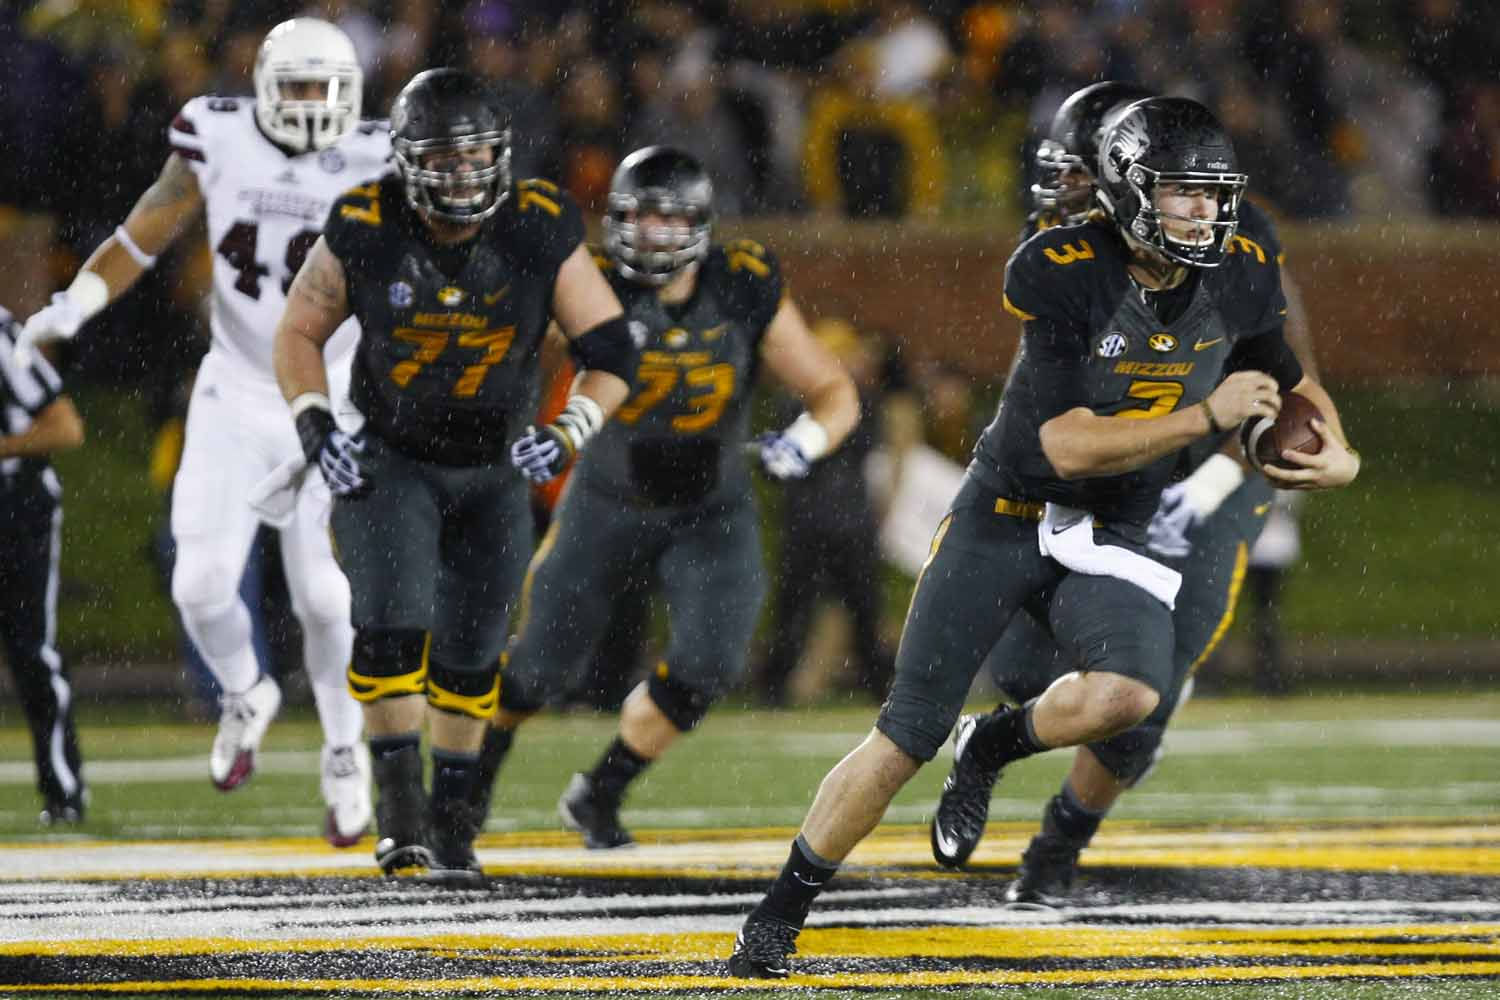 Drew Lock, right, advances the ball, running downfield during the first half of the game against Mississippi State, Thursday evening. Photo by Tanzi Propst.